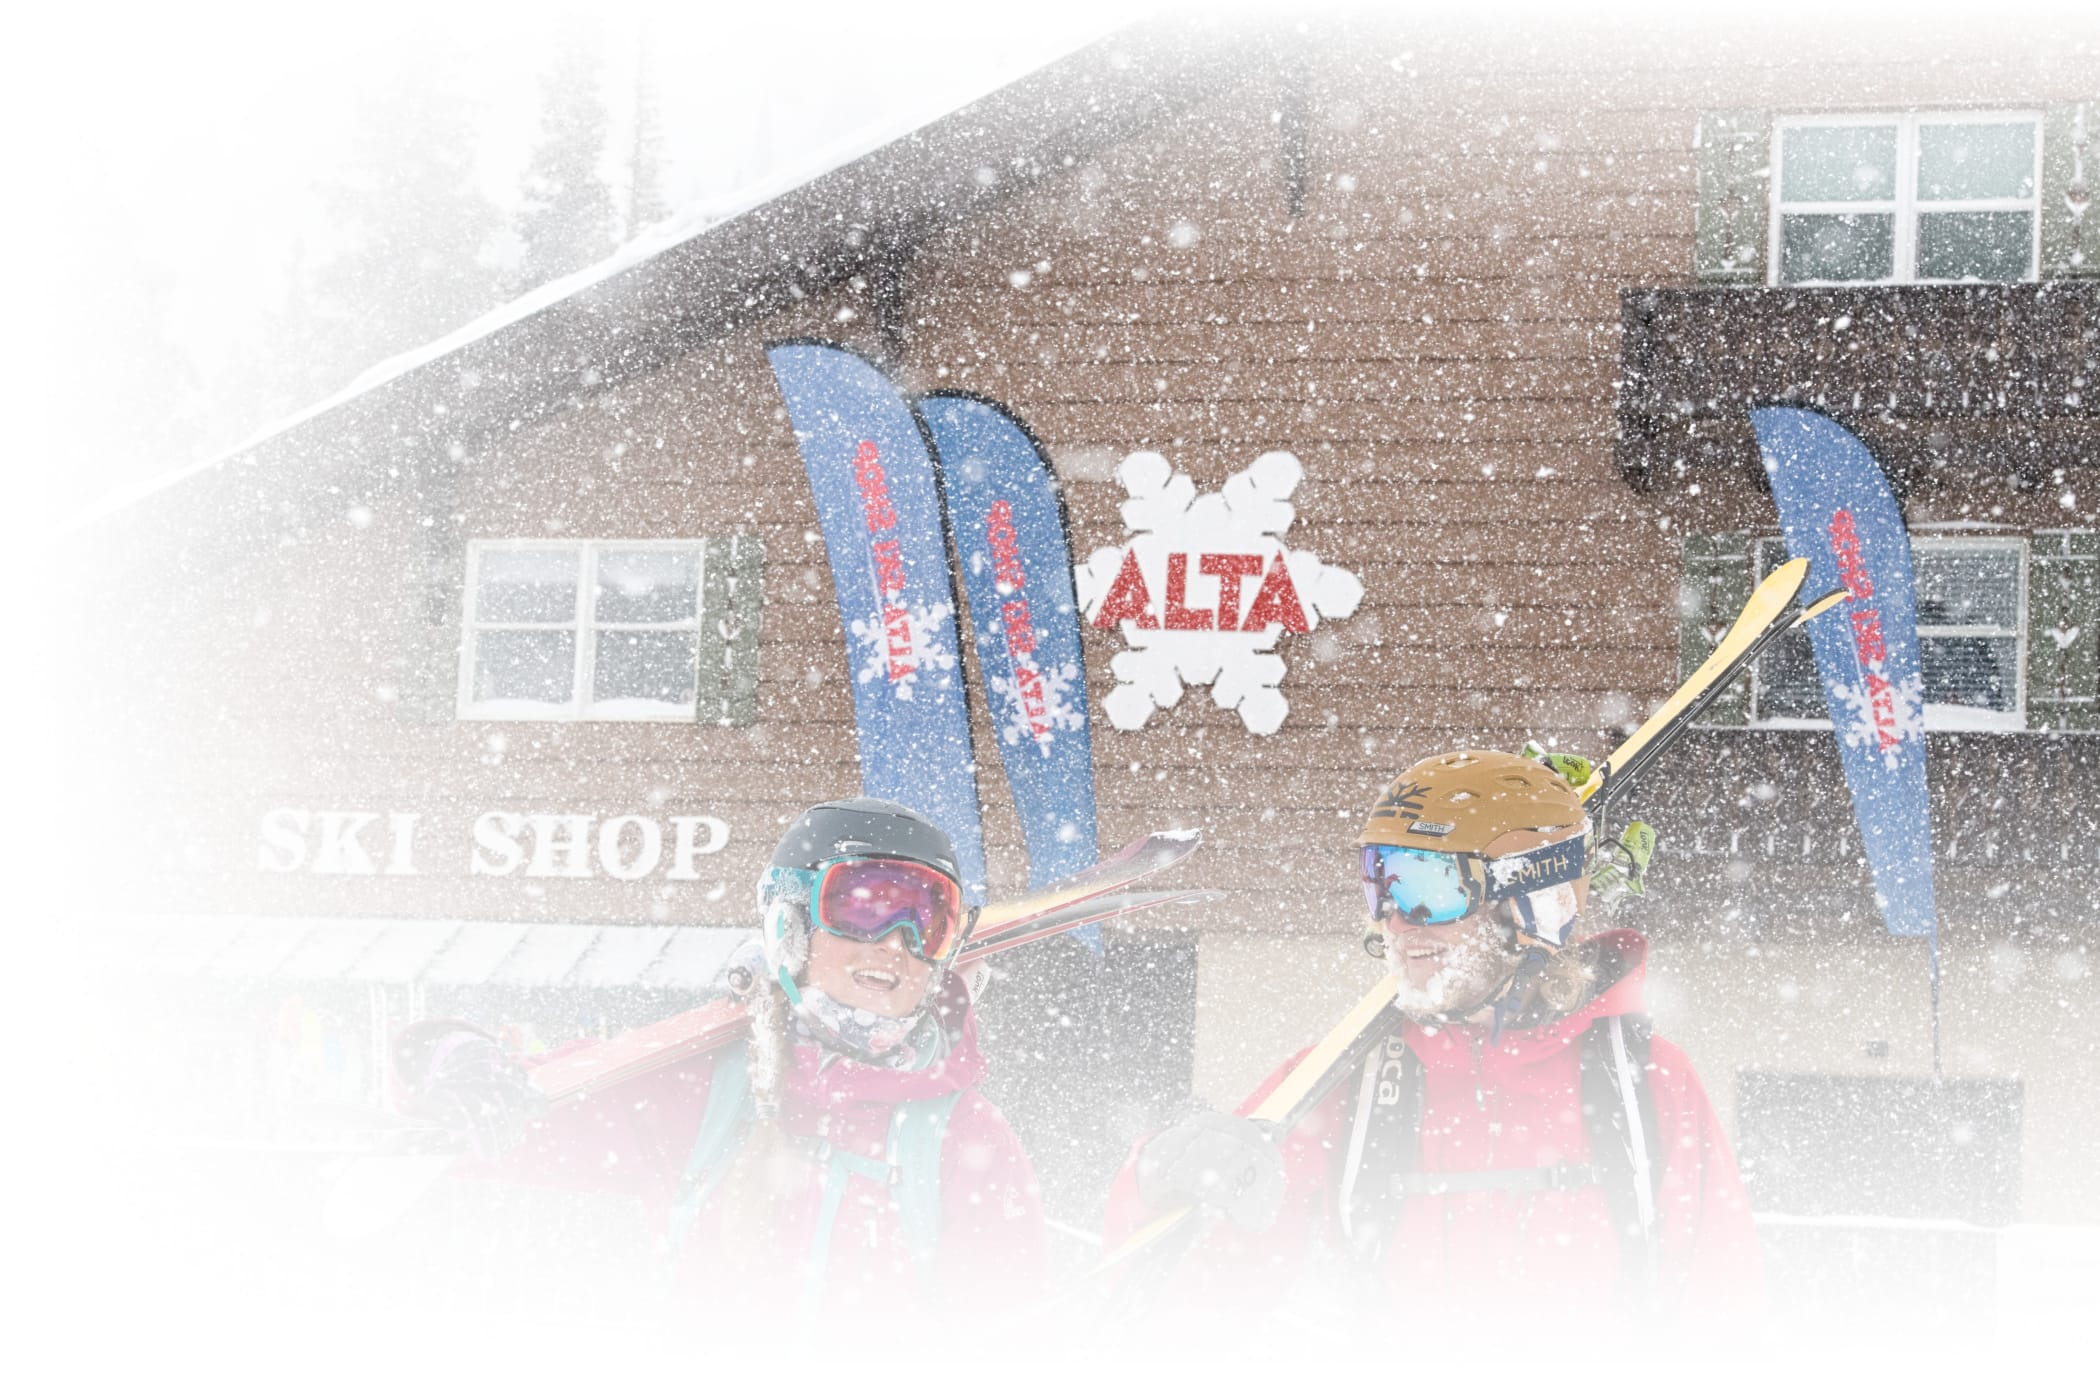 Skiers carrying demo skis out of Alta's Ski Shop on snowy day